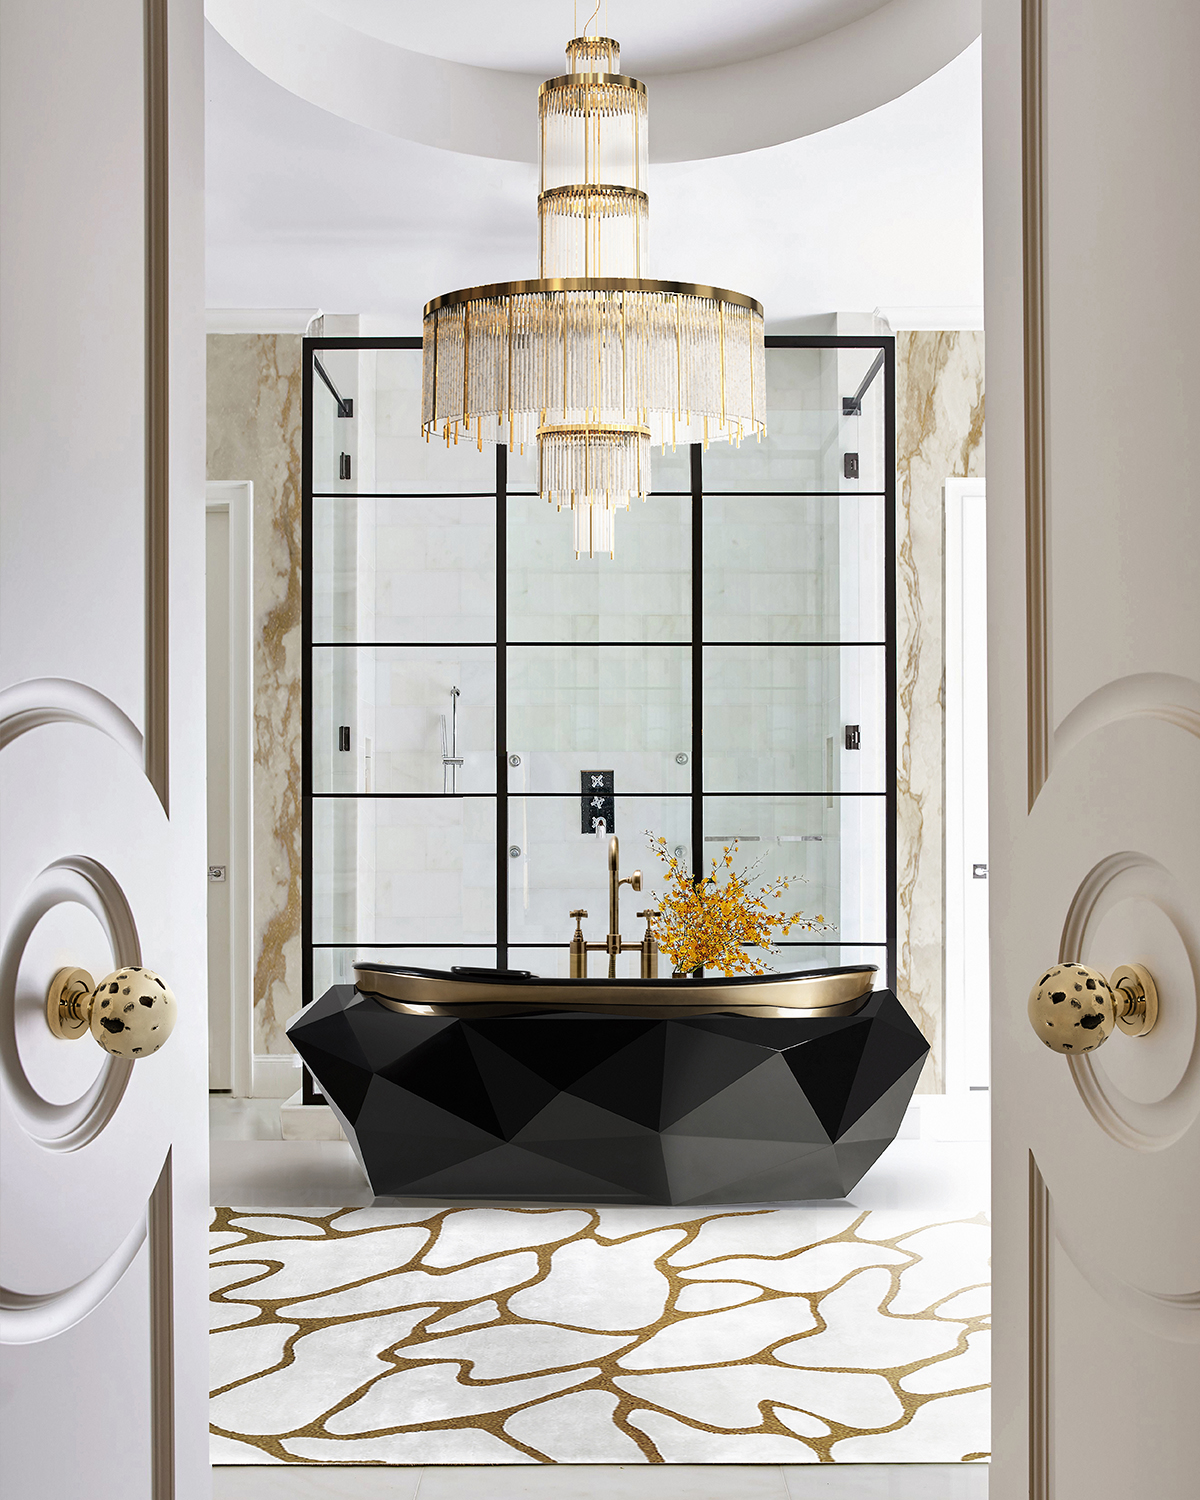 5 Rugs For A Perfect Bathroom Design